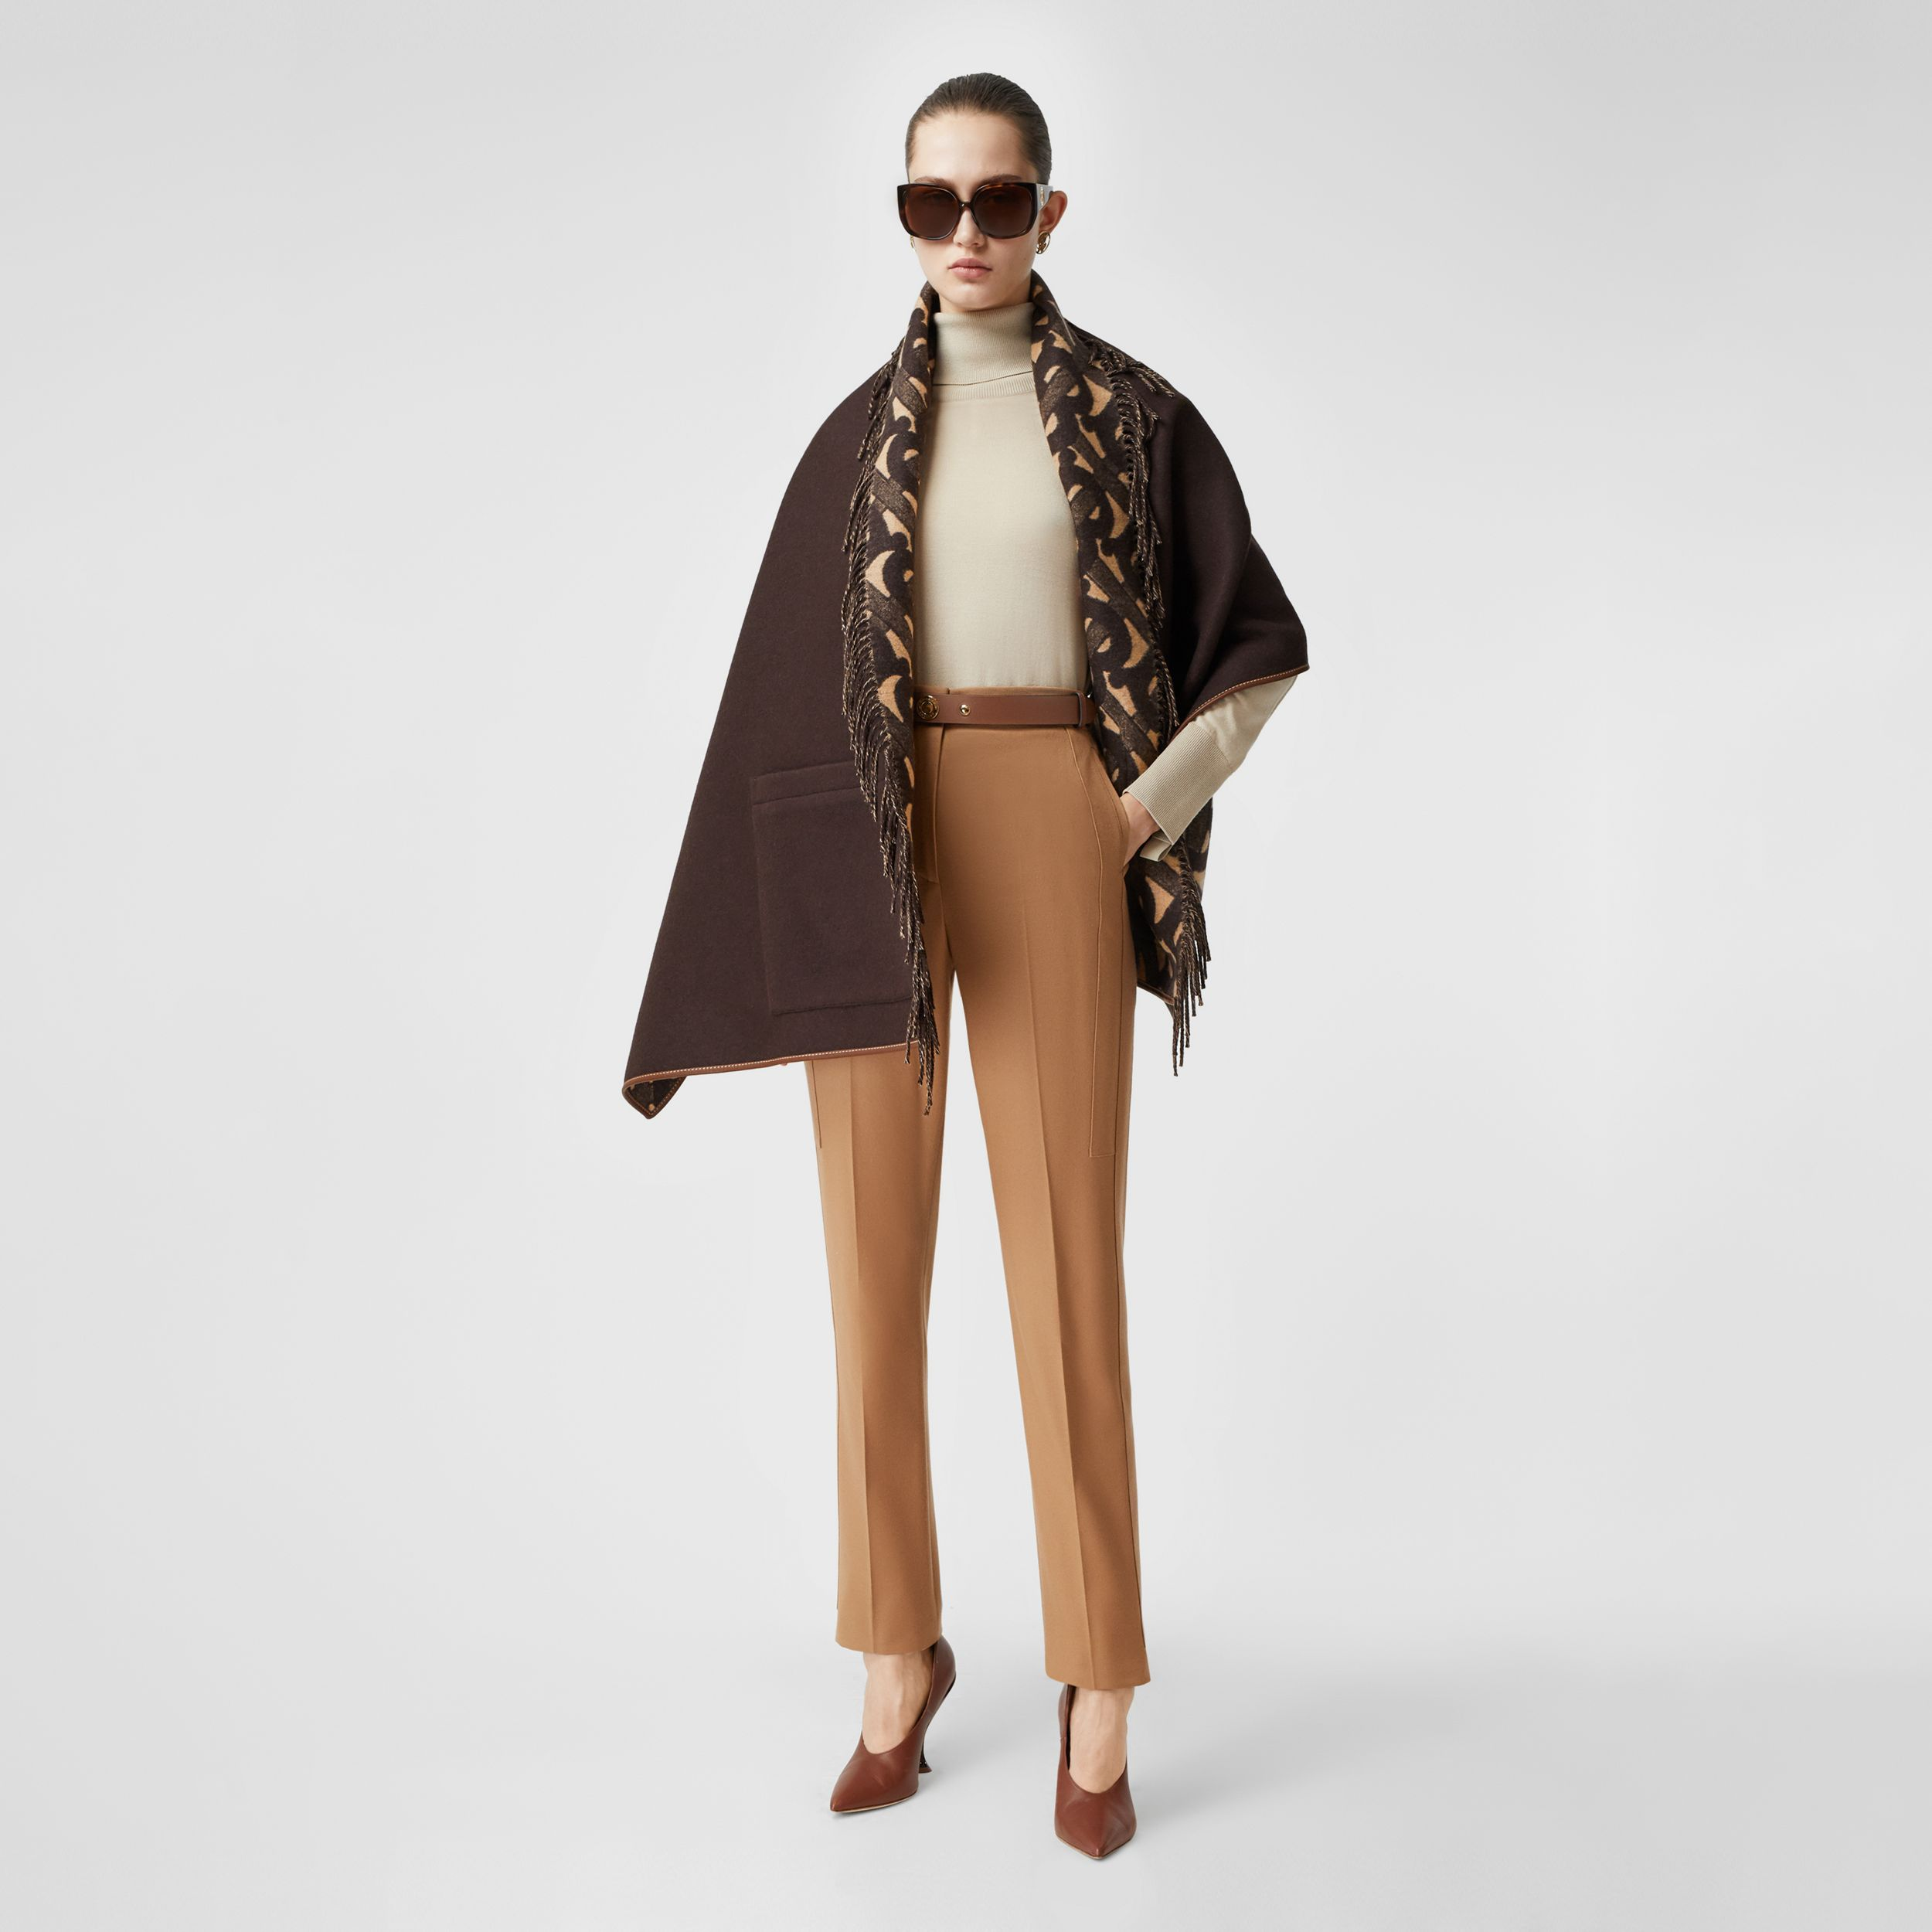 Monogram Merino Wool Cashmere Jacquard Cape in Deep Brown - Women | Burberry - 1